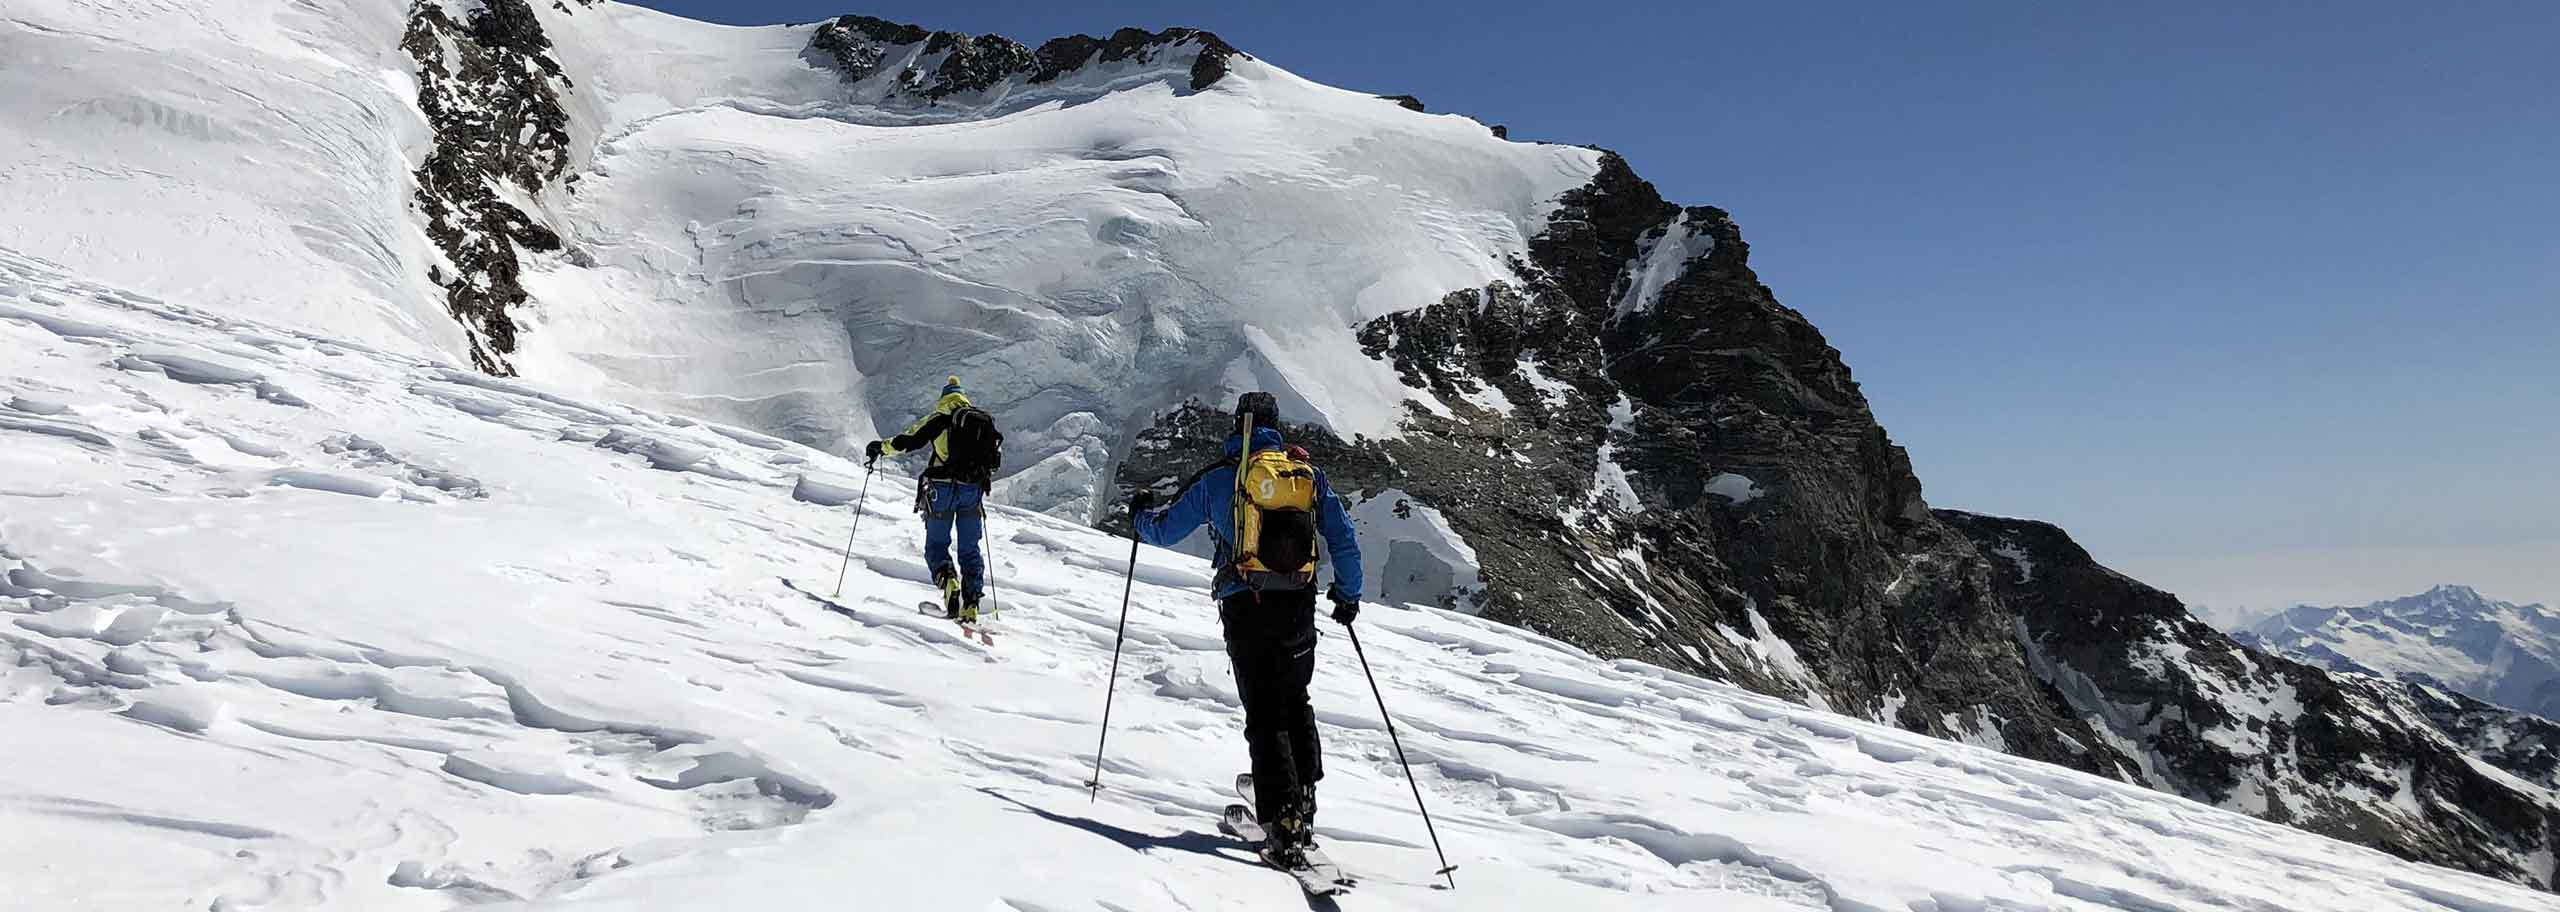 Ski Mountaineering with Mountain Guide in Alagna, Monte Rosa